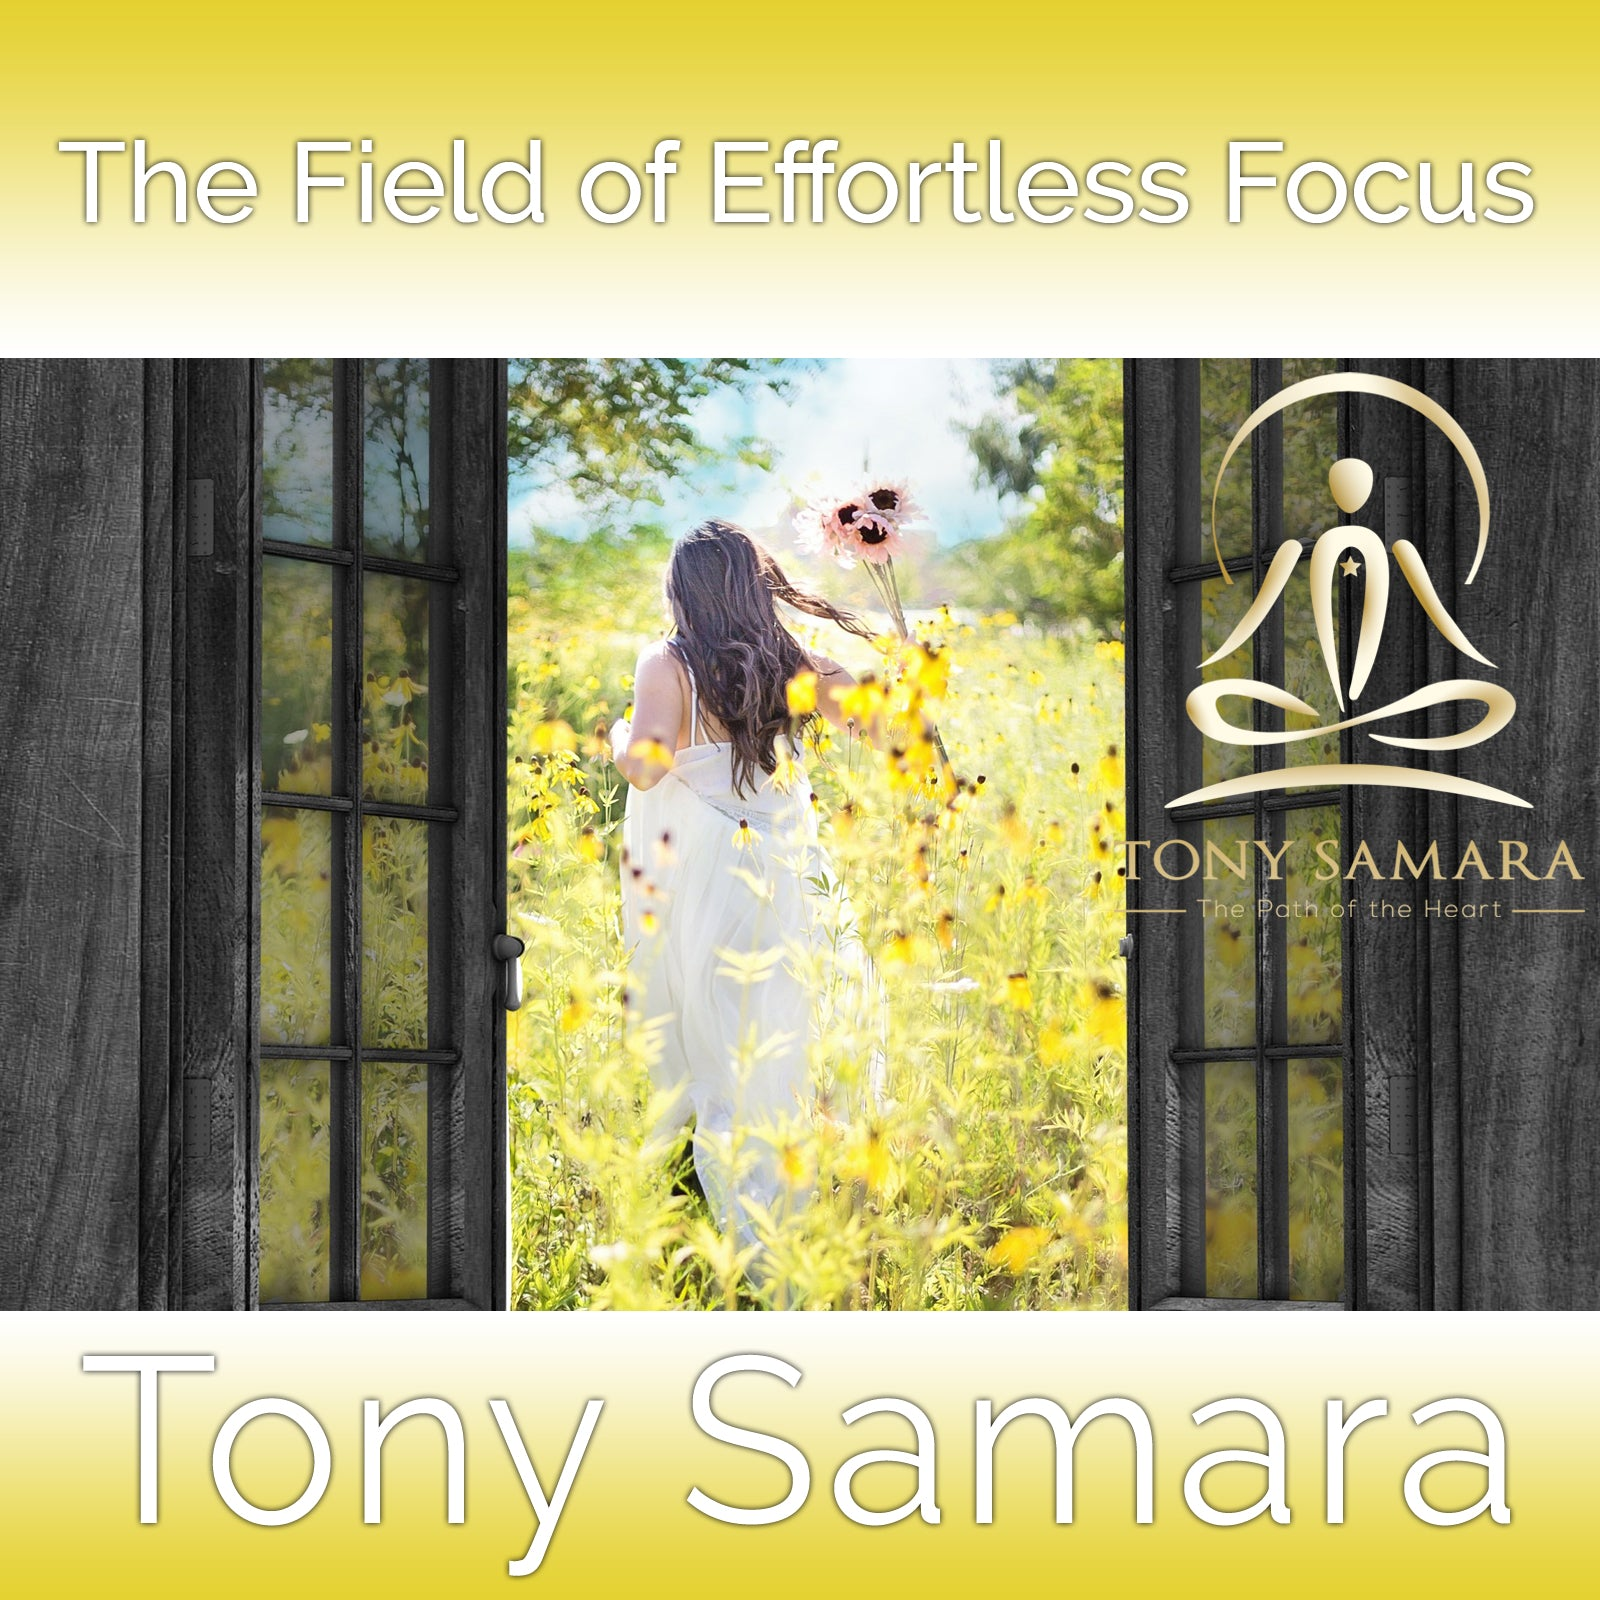 The Field of Effortless Focus (MP3 Audio Download) - Tony Samara Meditation